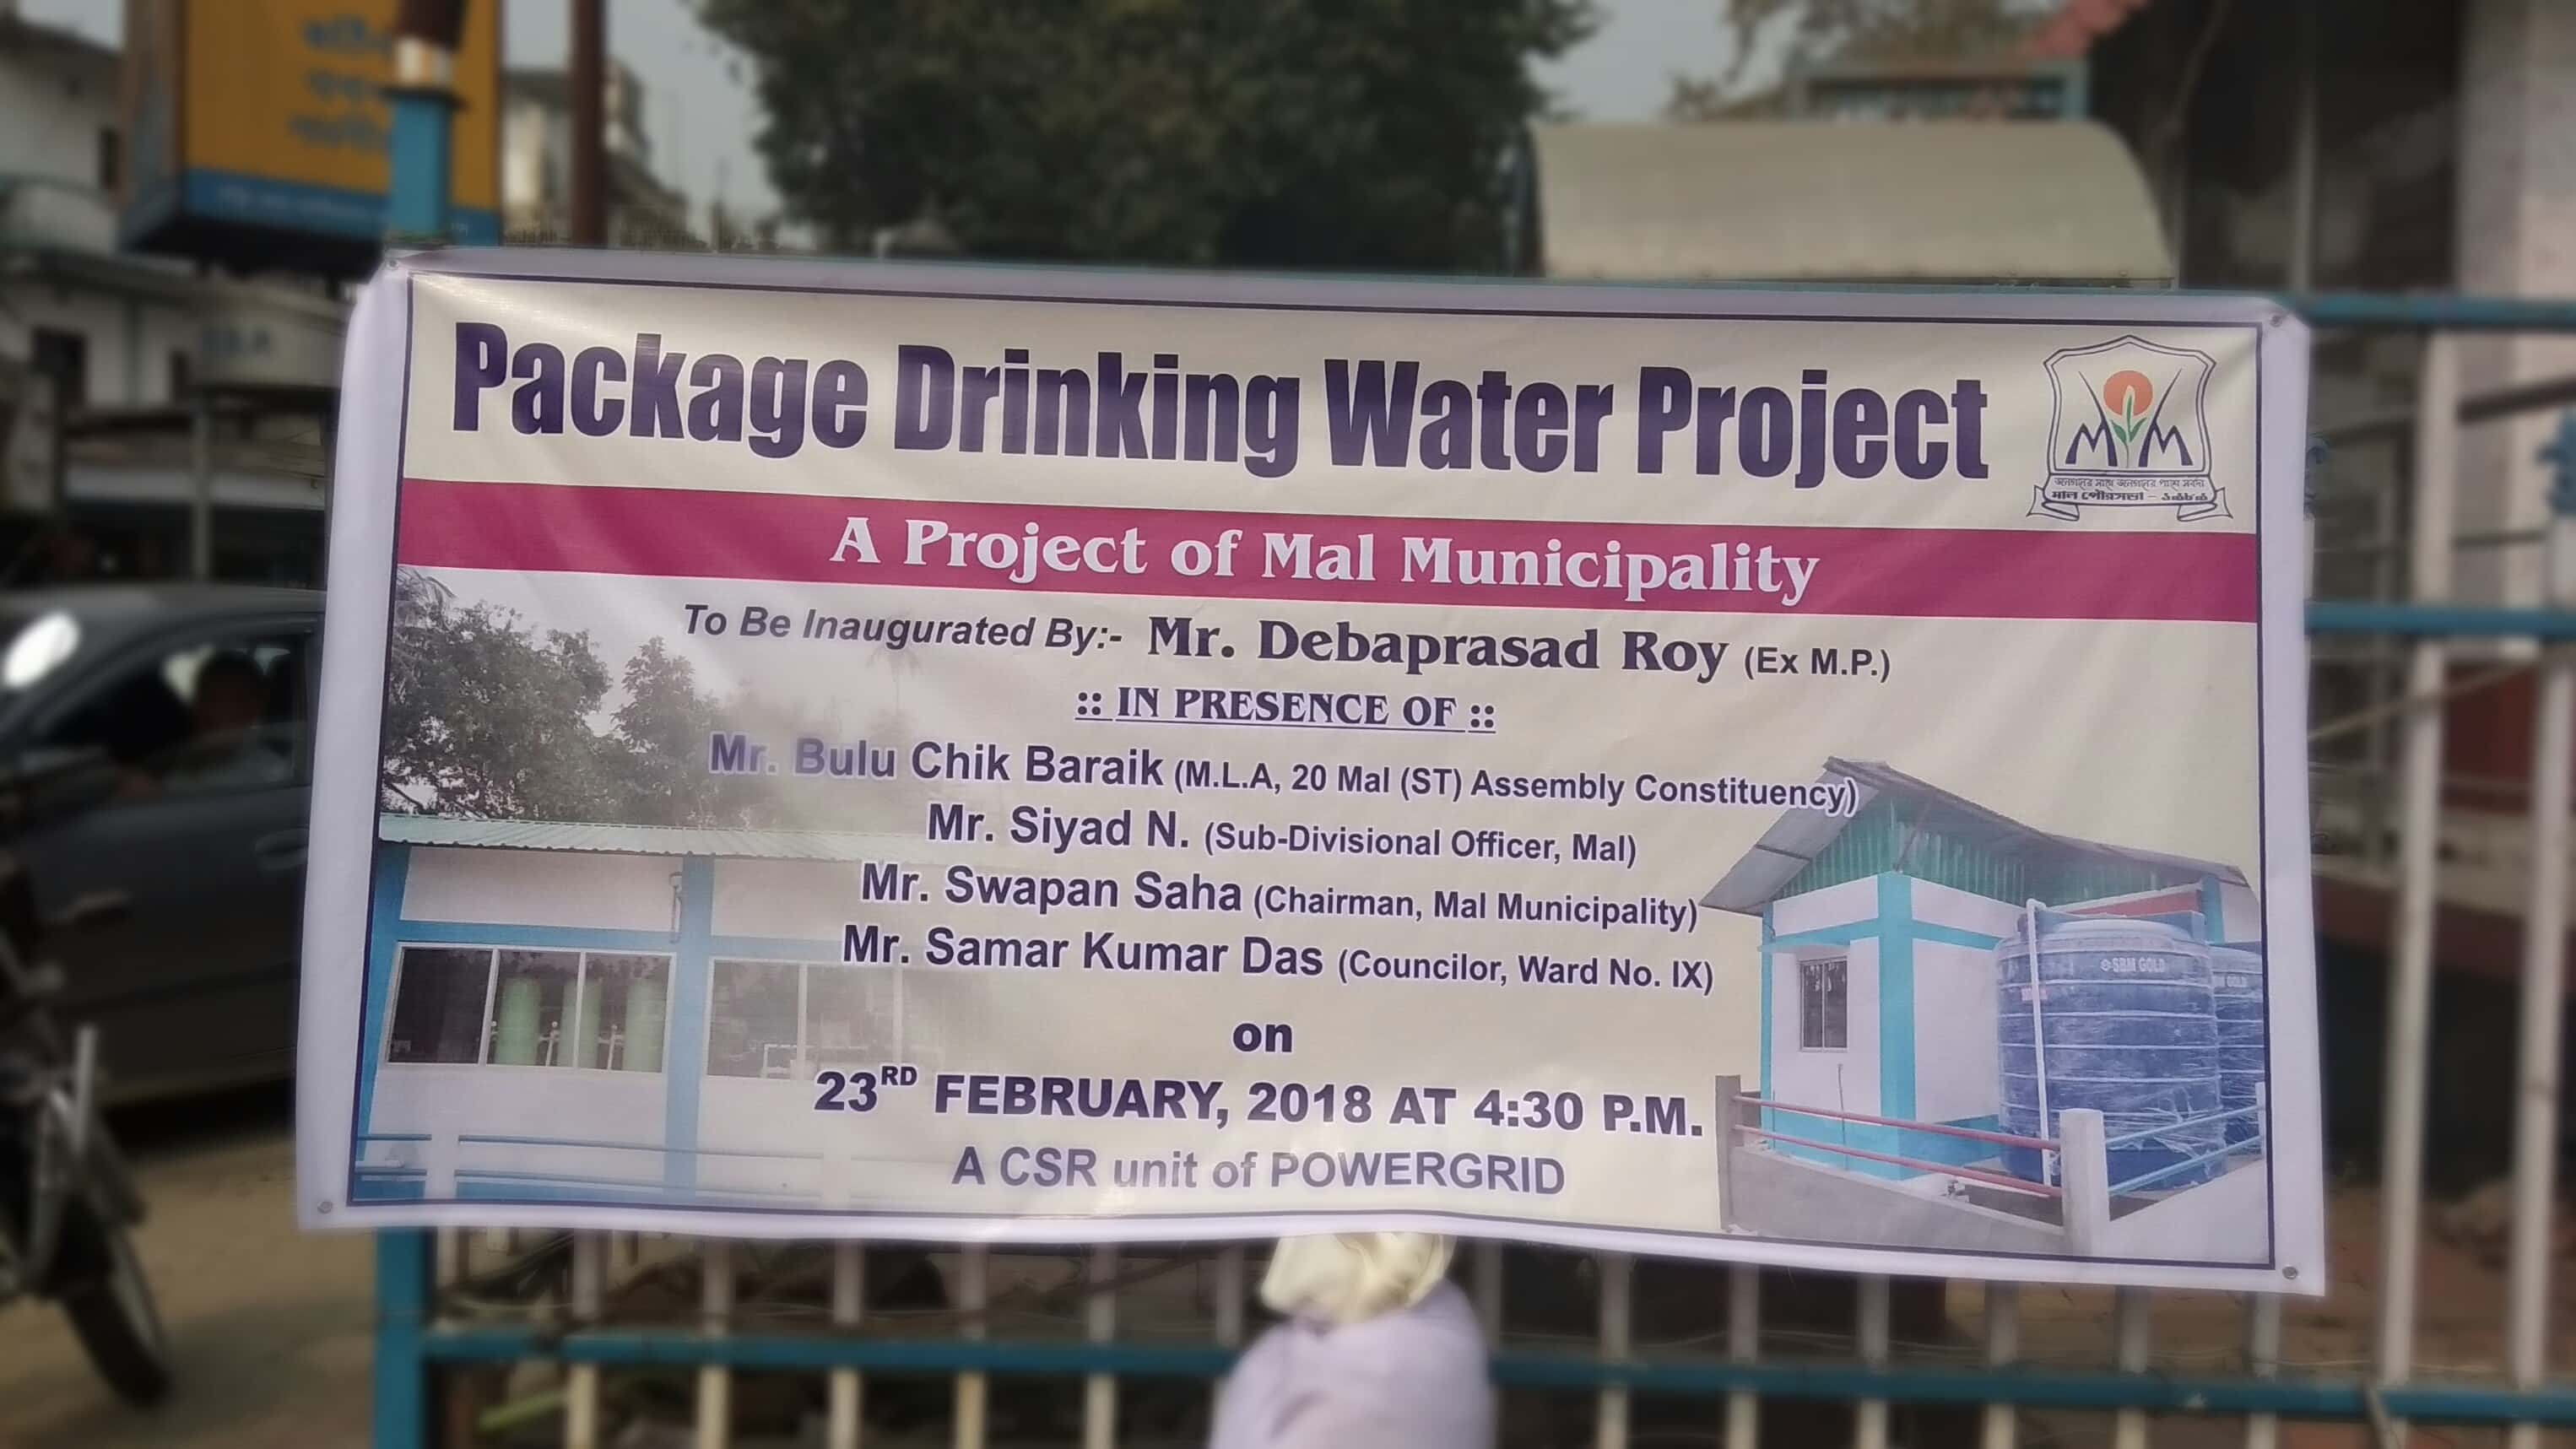 Package Drinking Water Project